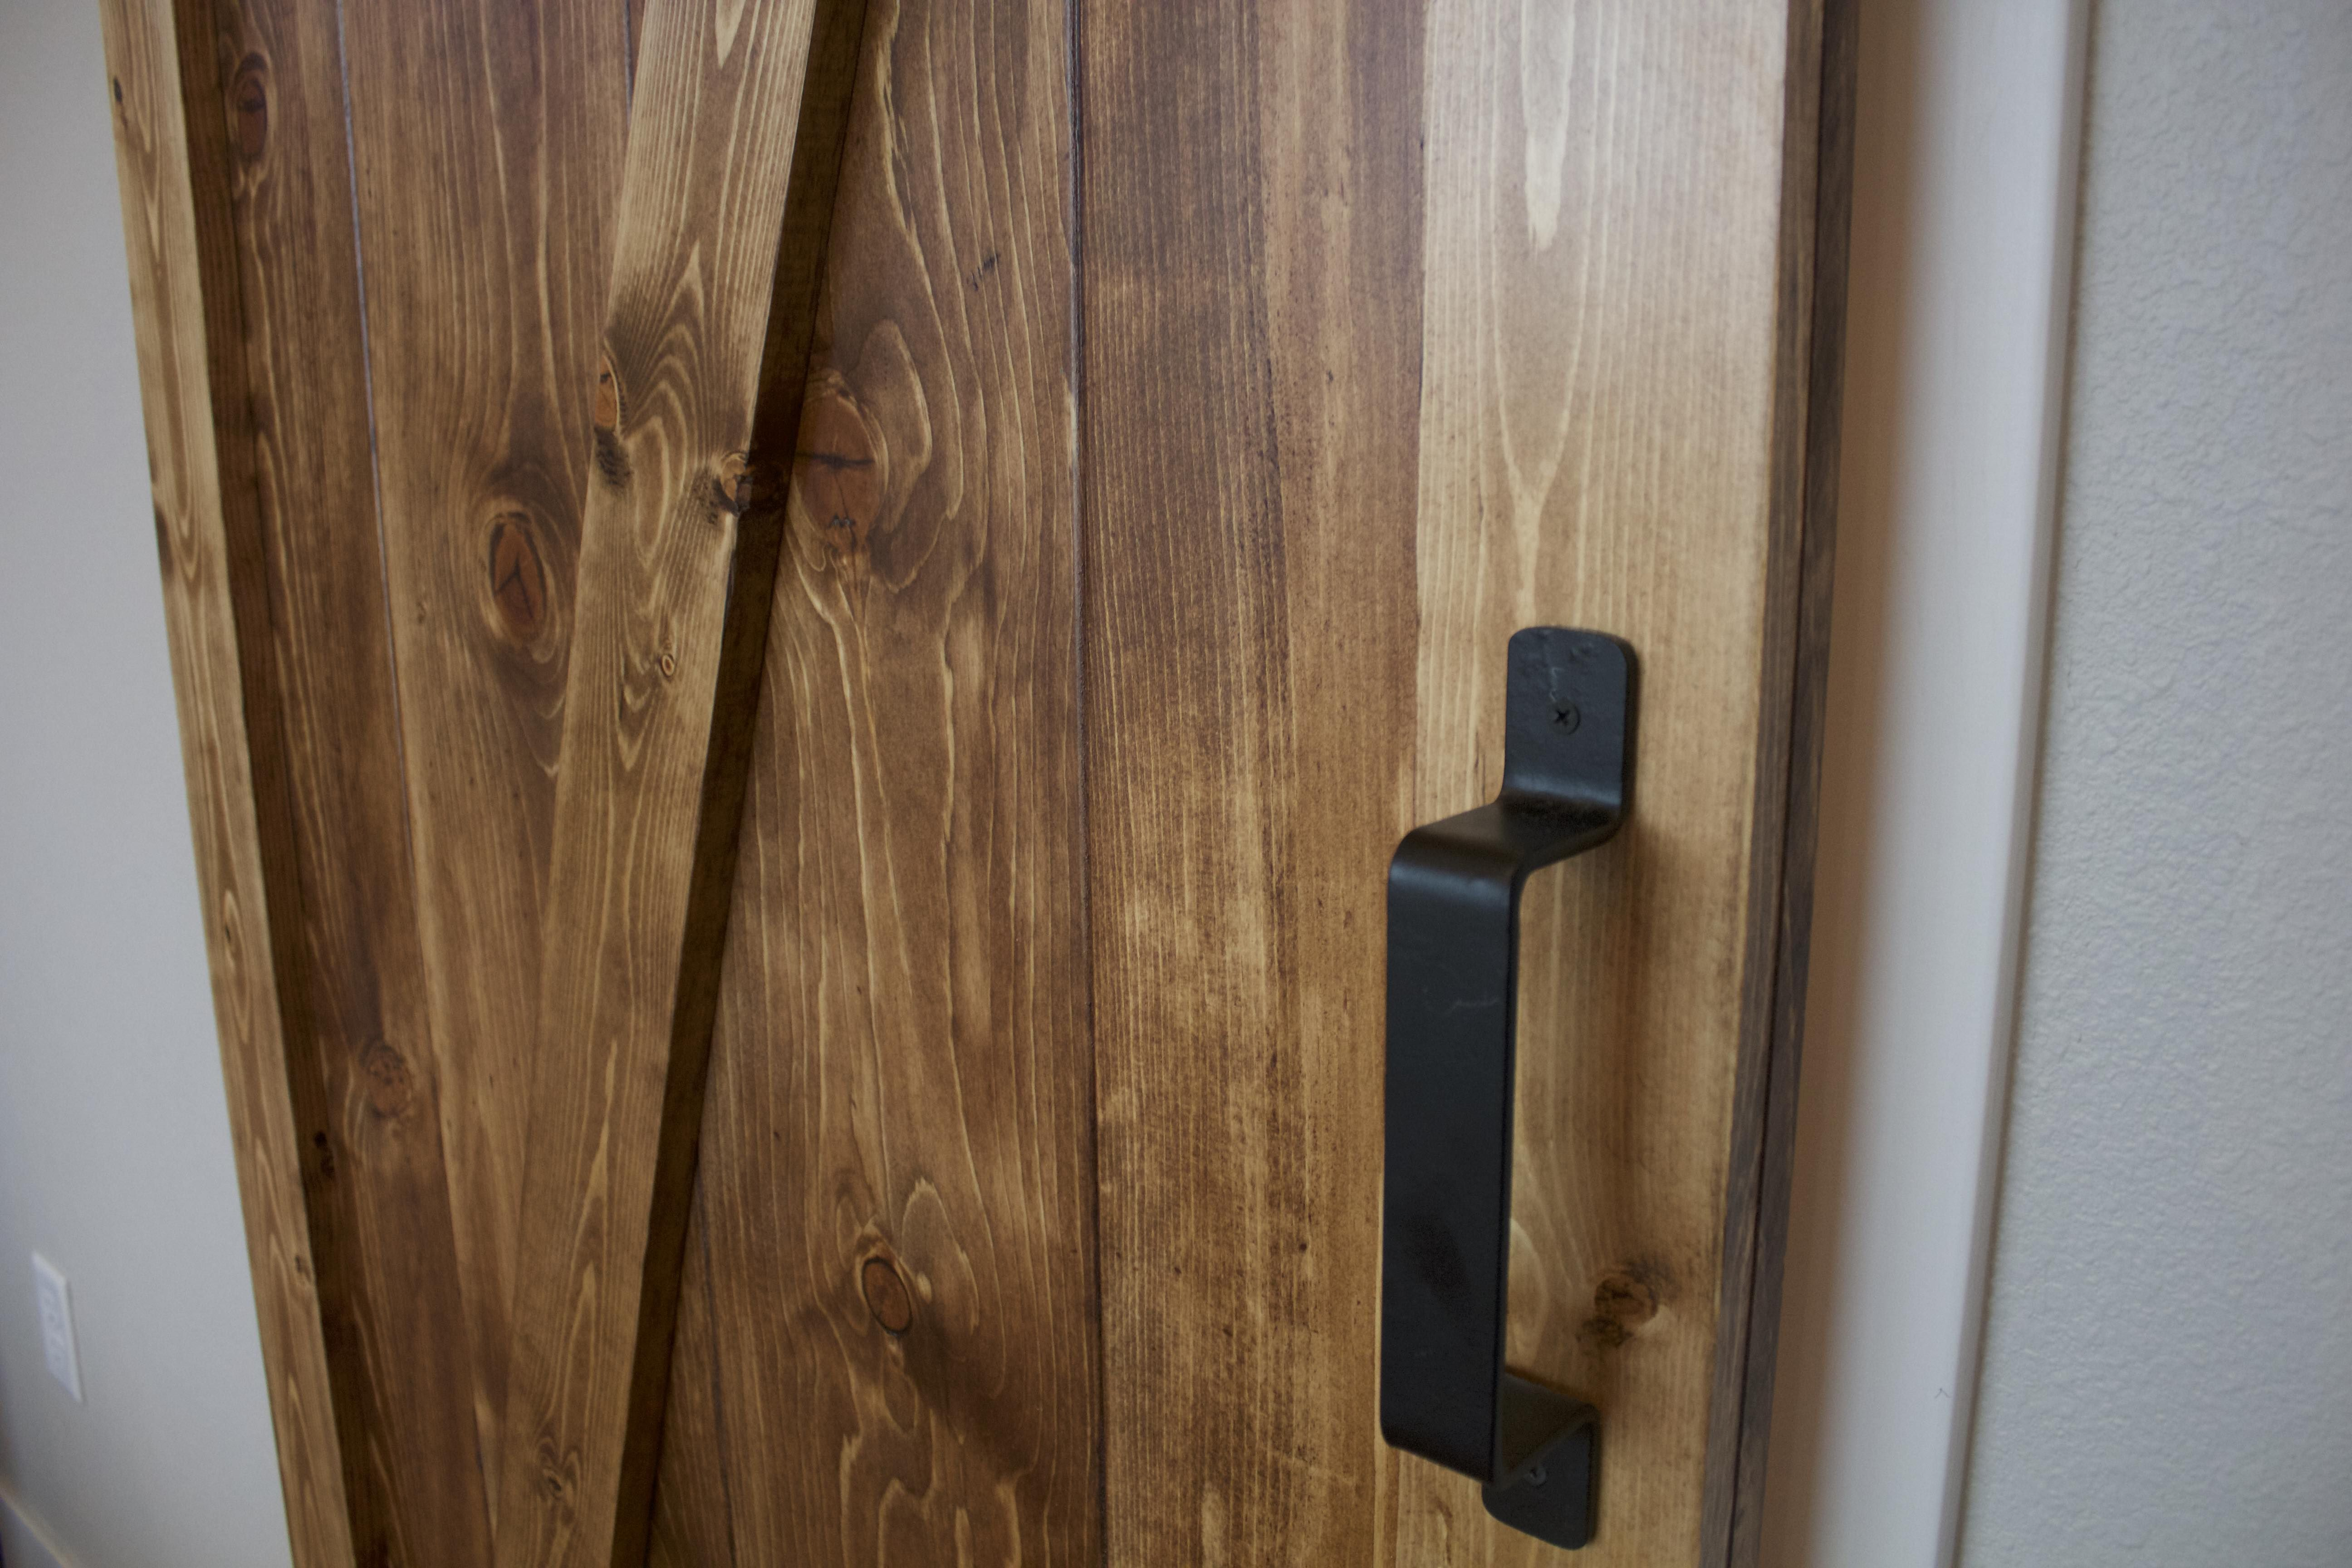 Heres A Sneak Peek Of Our Custom Barn Door Collection That Will Be